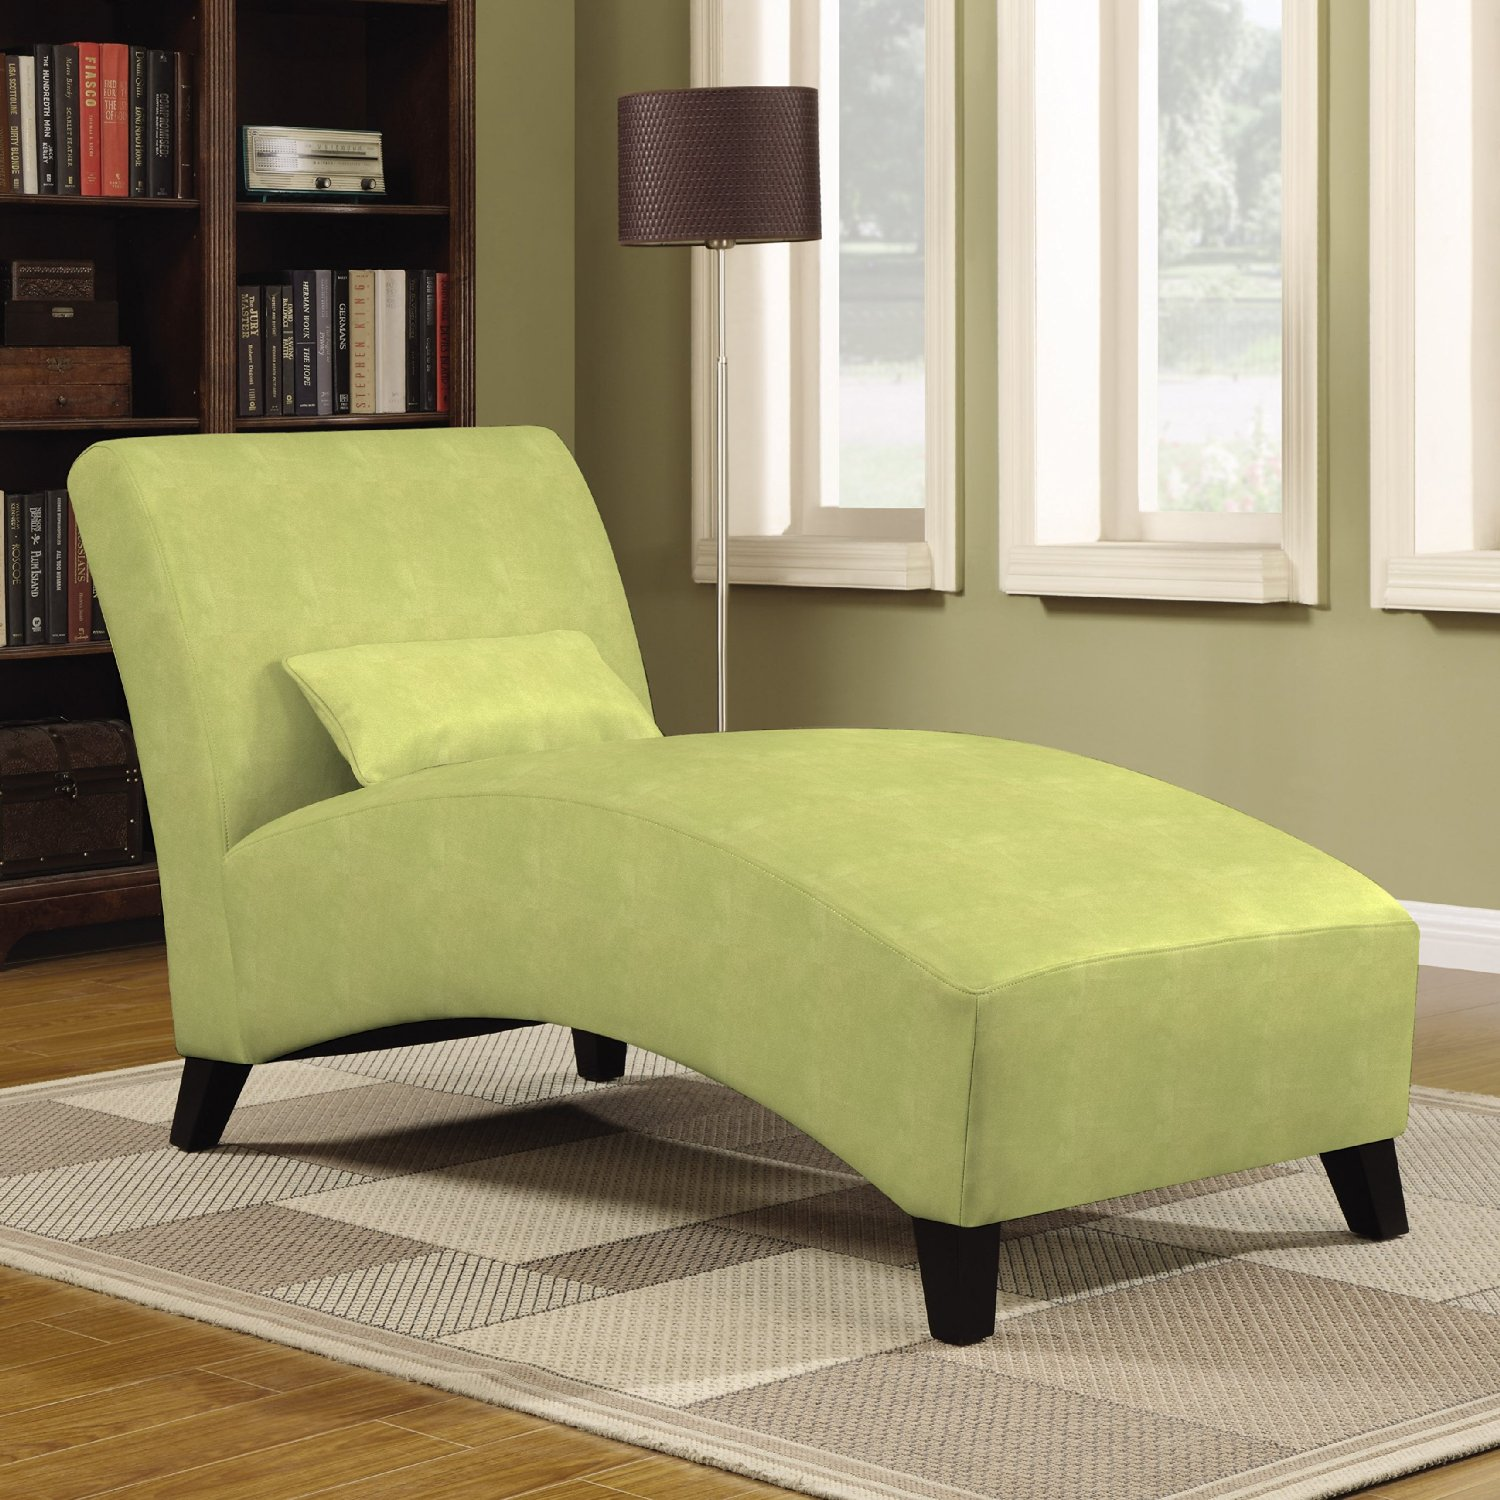 Upholstered chaise lounges for bedrooms for Small bedroom chaise lounge chairs